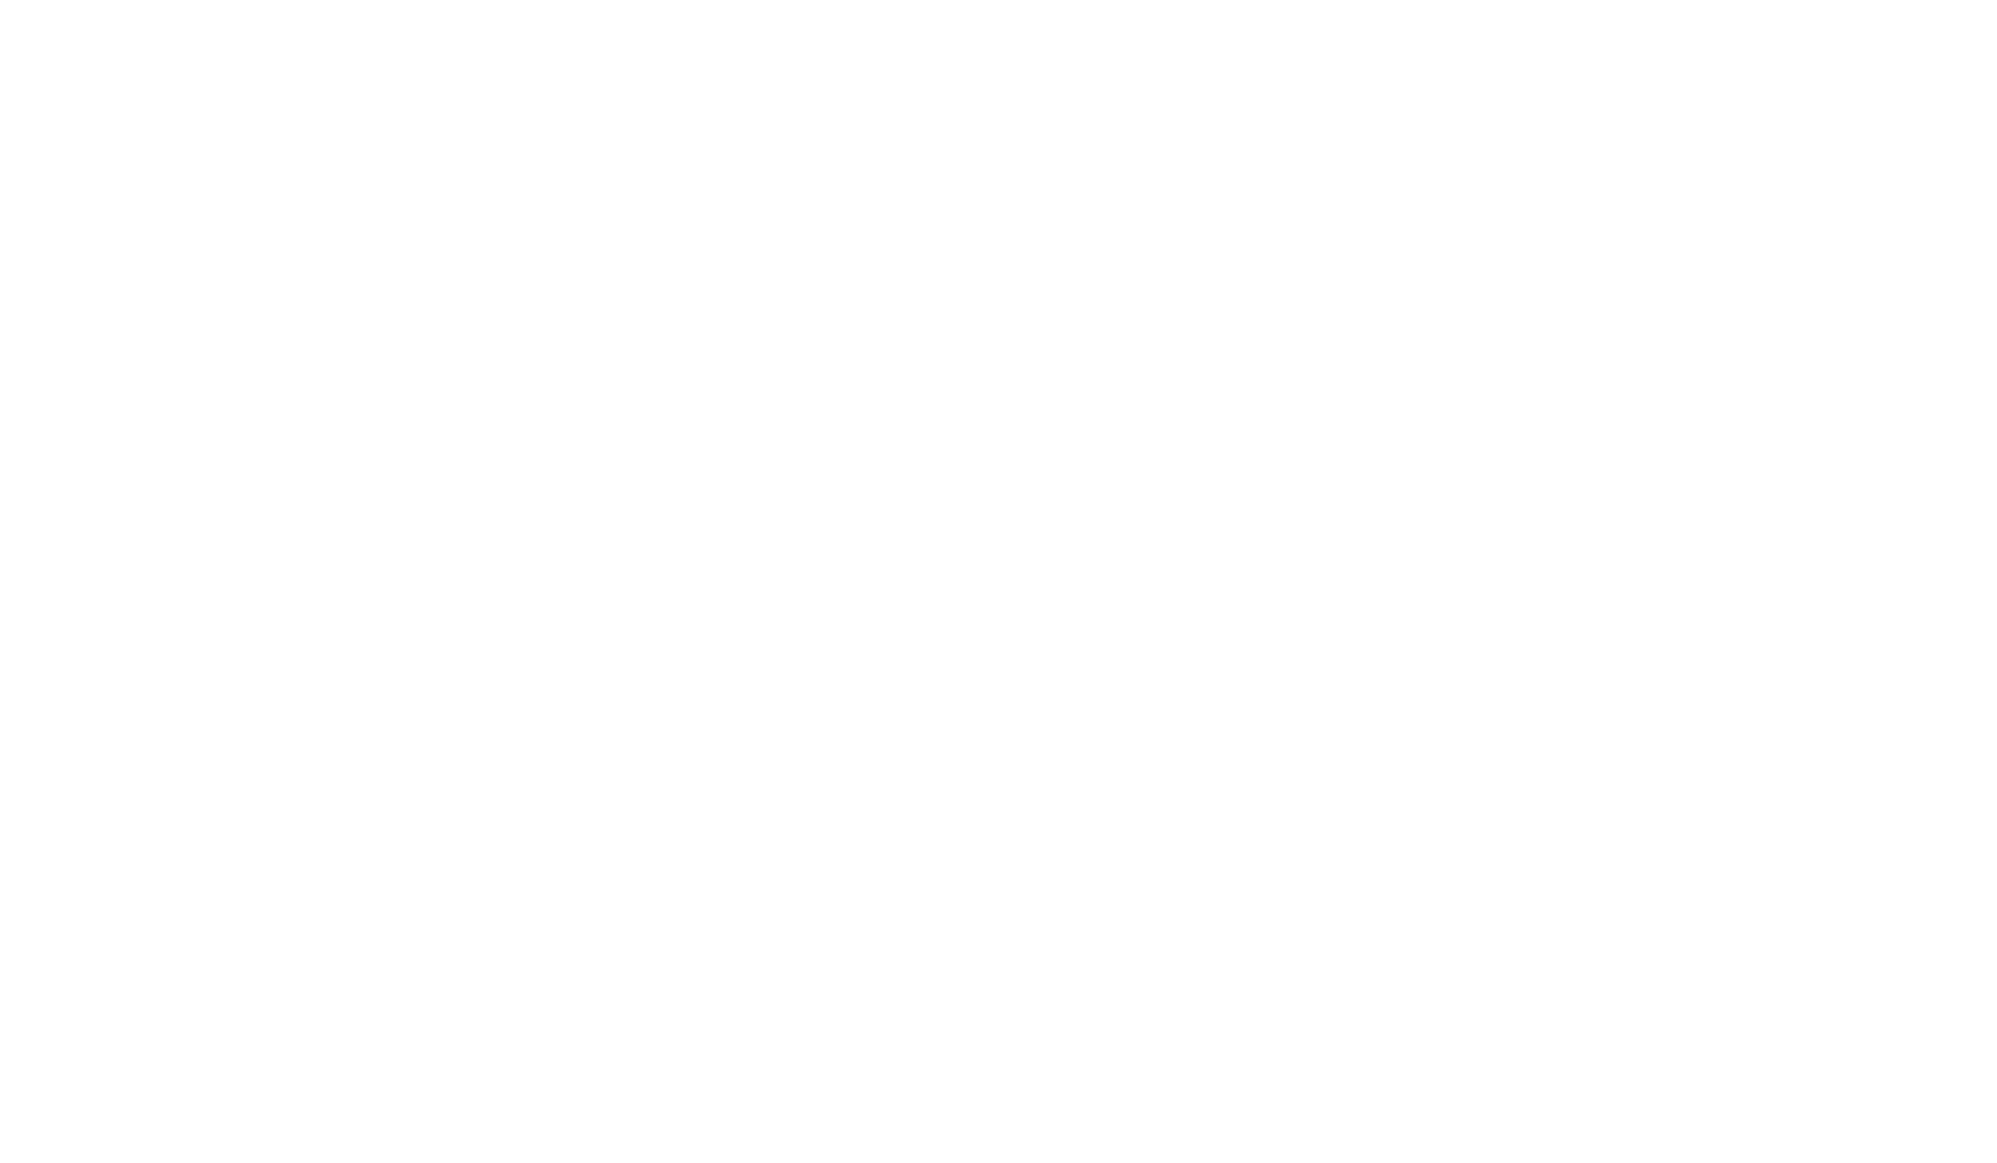 An illustration of a woman holding her dog on a leash as a man walks towards her.